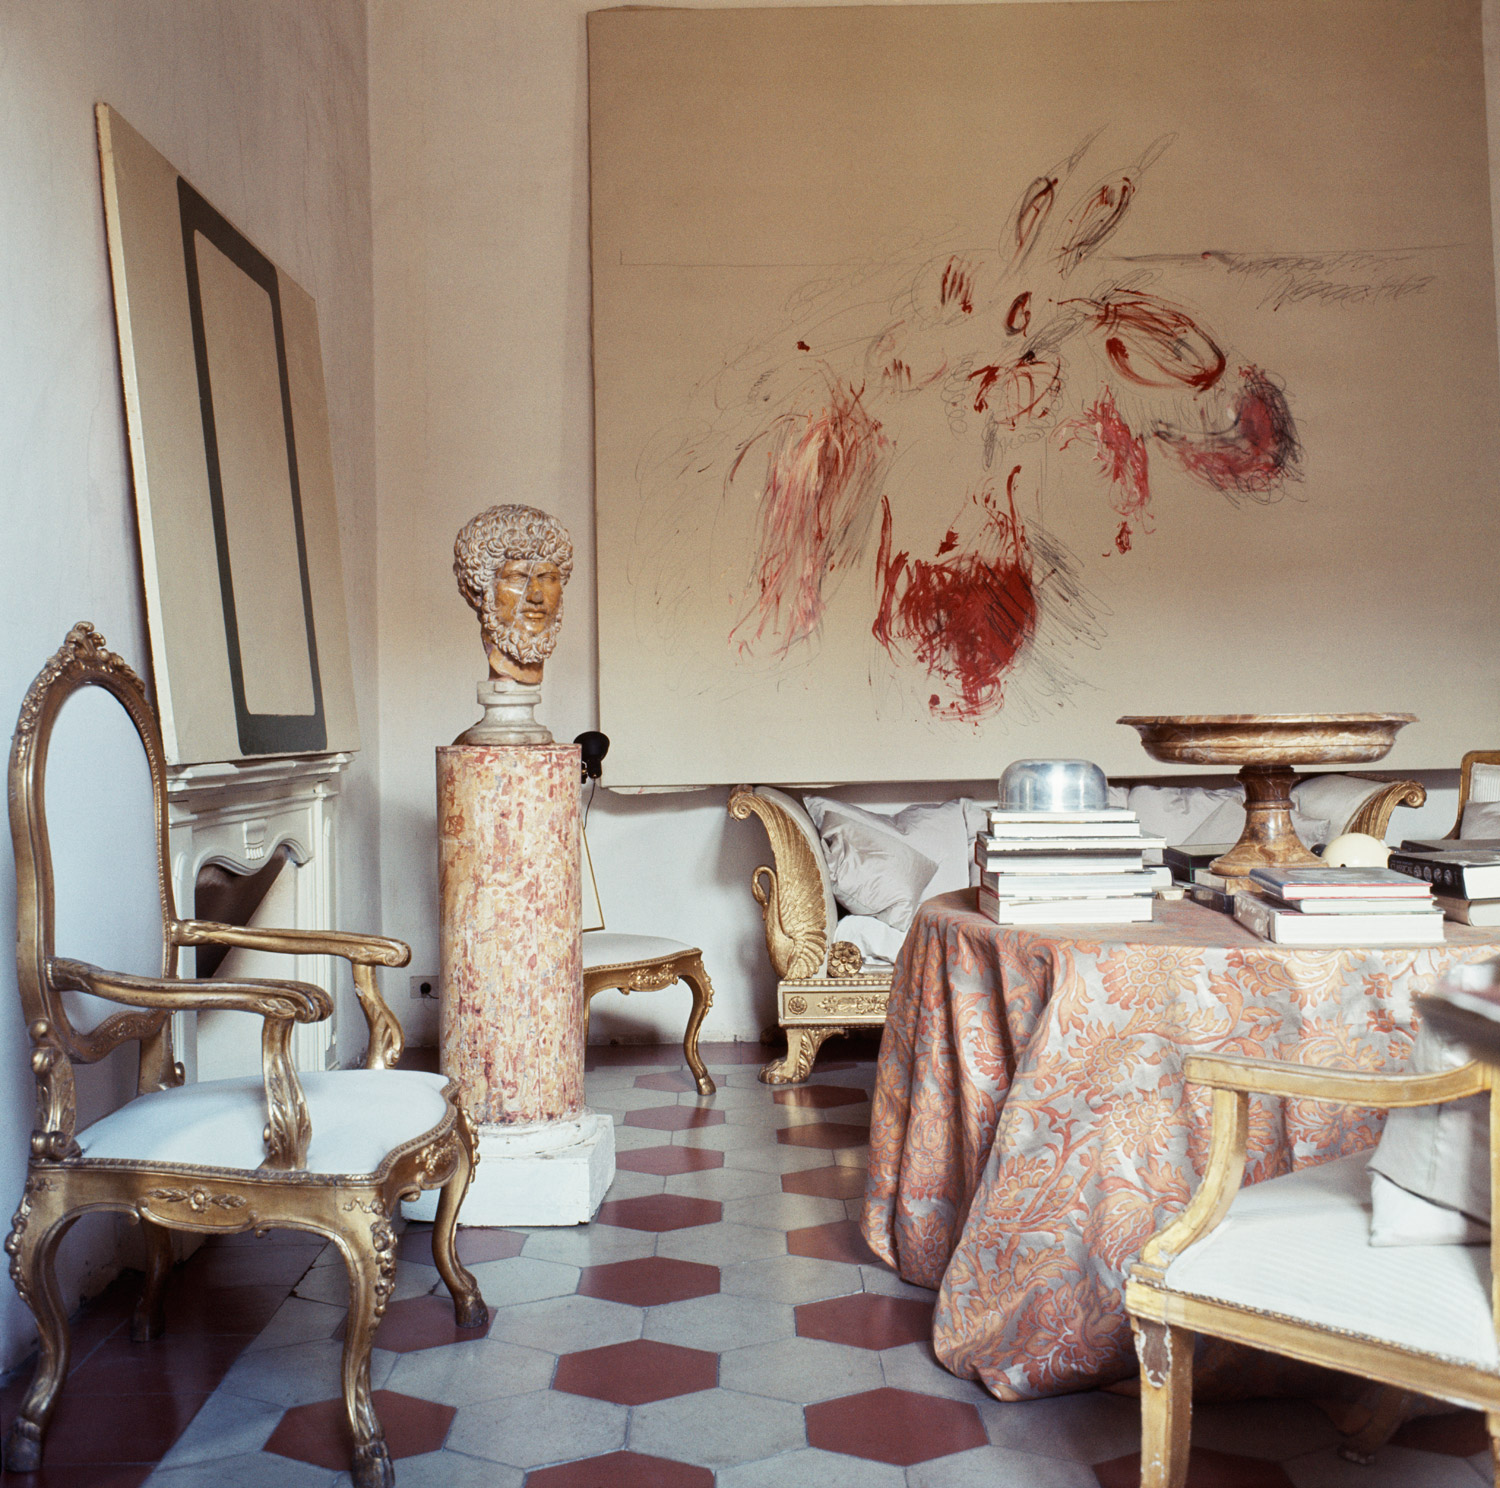 At home with Cy Twombly - Rome, 1966